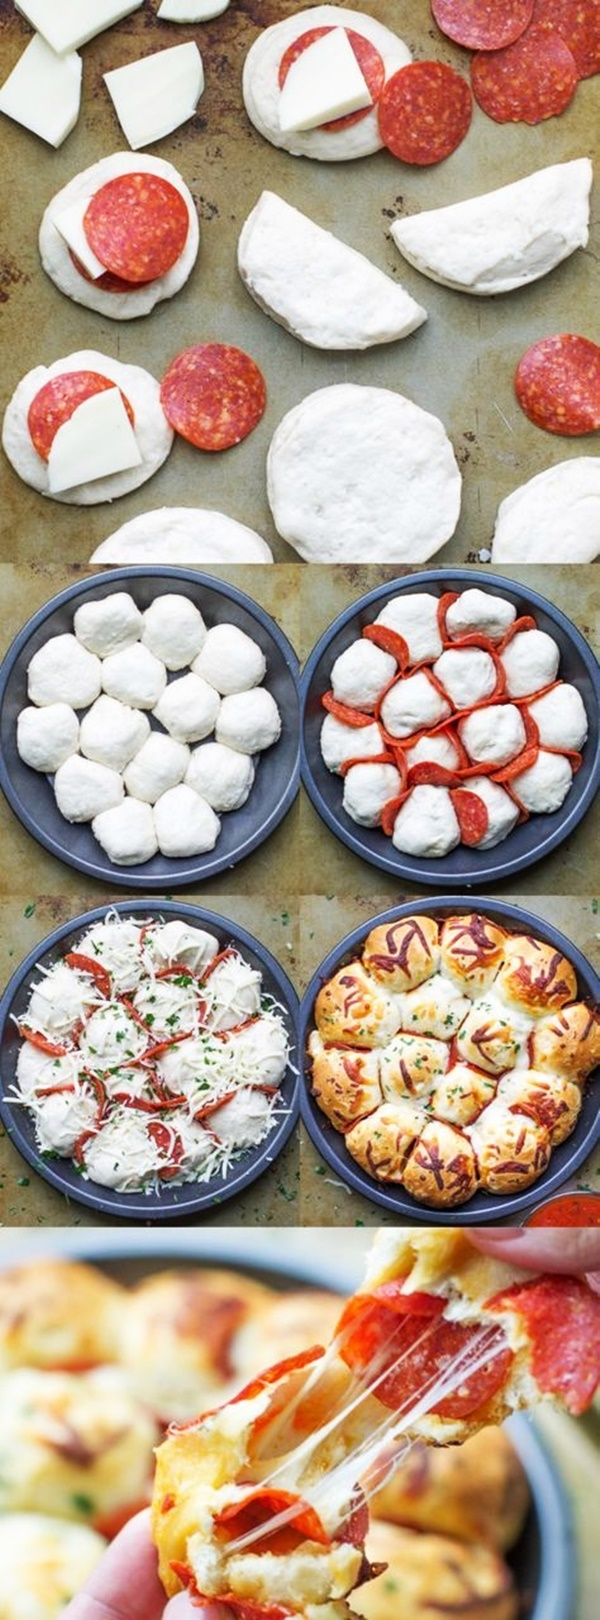 DeliciousIdeas For Pizza Party With Recipes